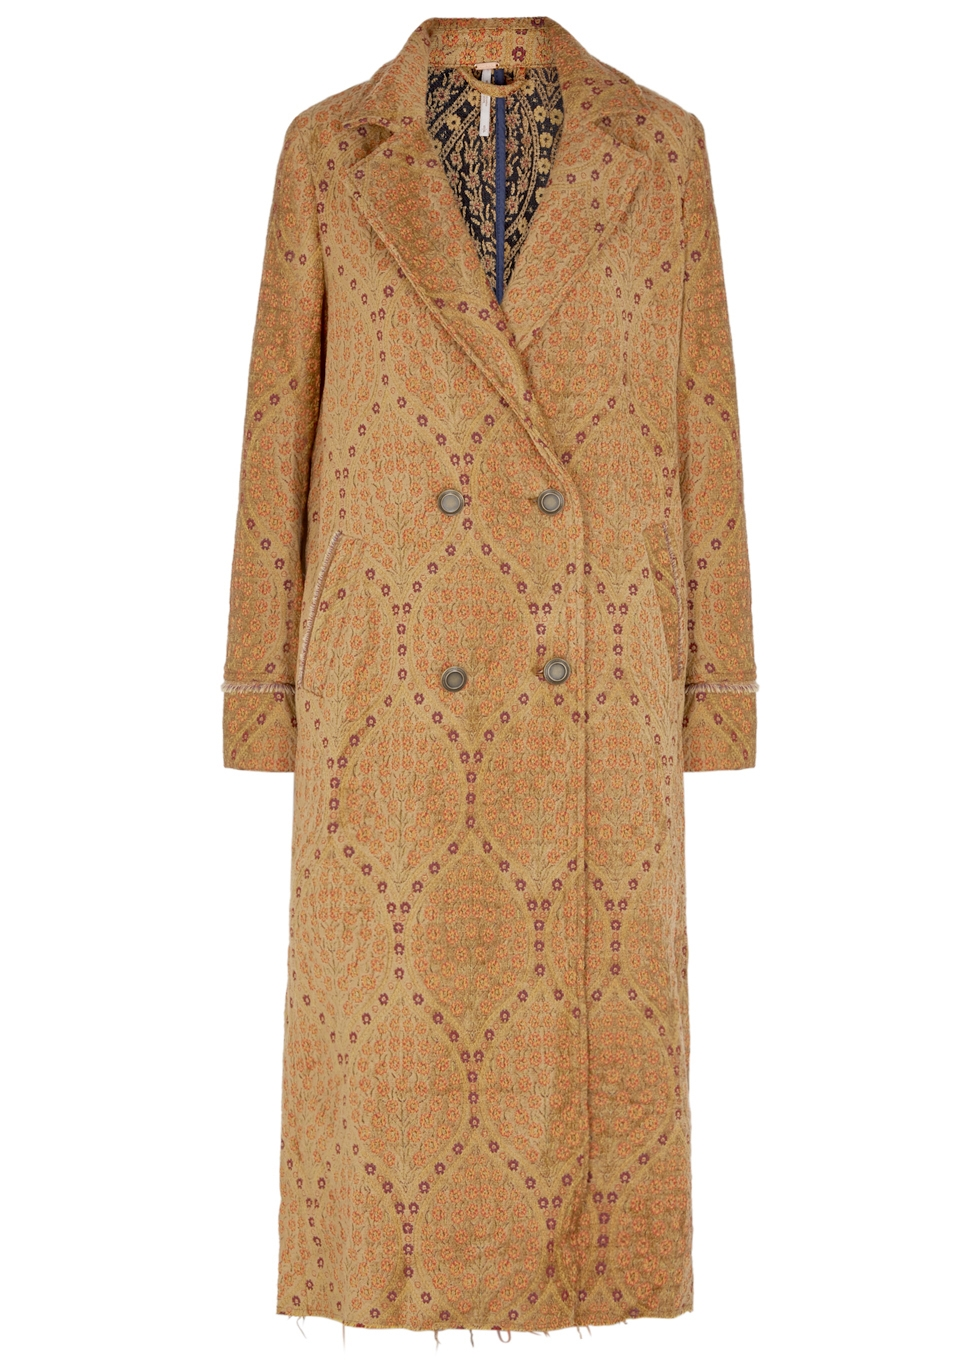 FREE PEOPLE OUT ALL NIGHT BROCADE COAT